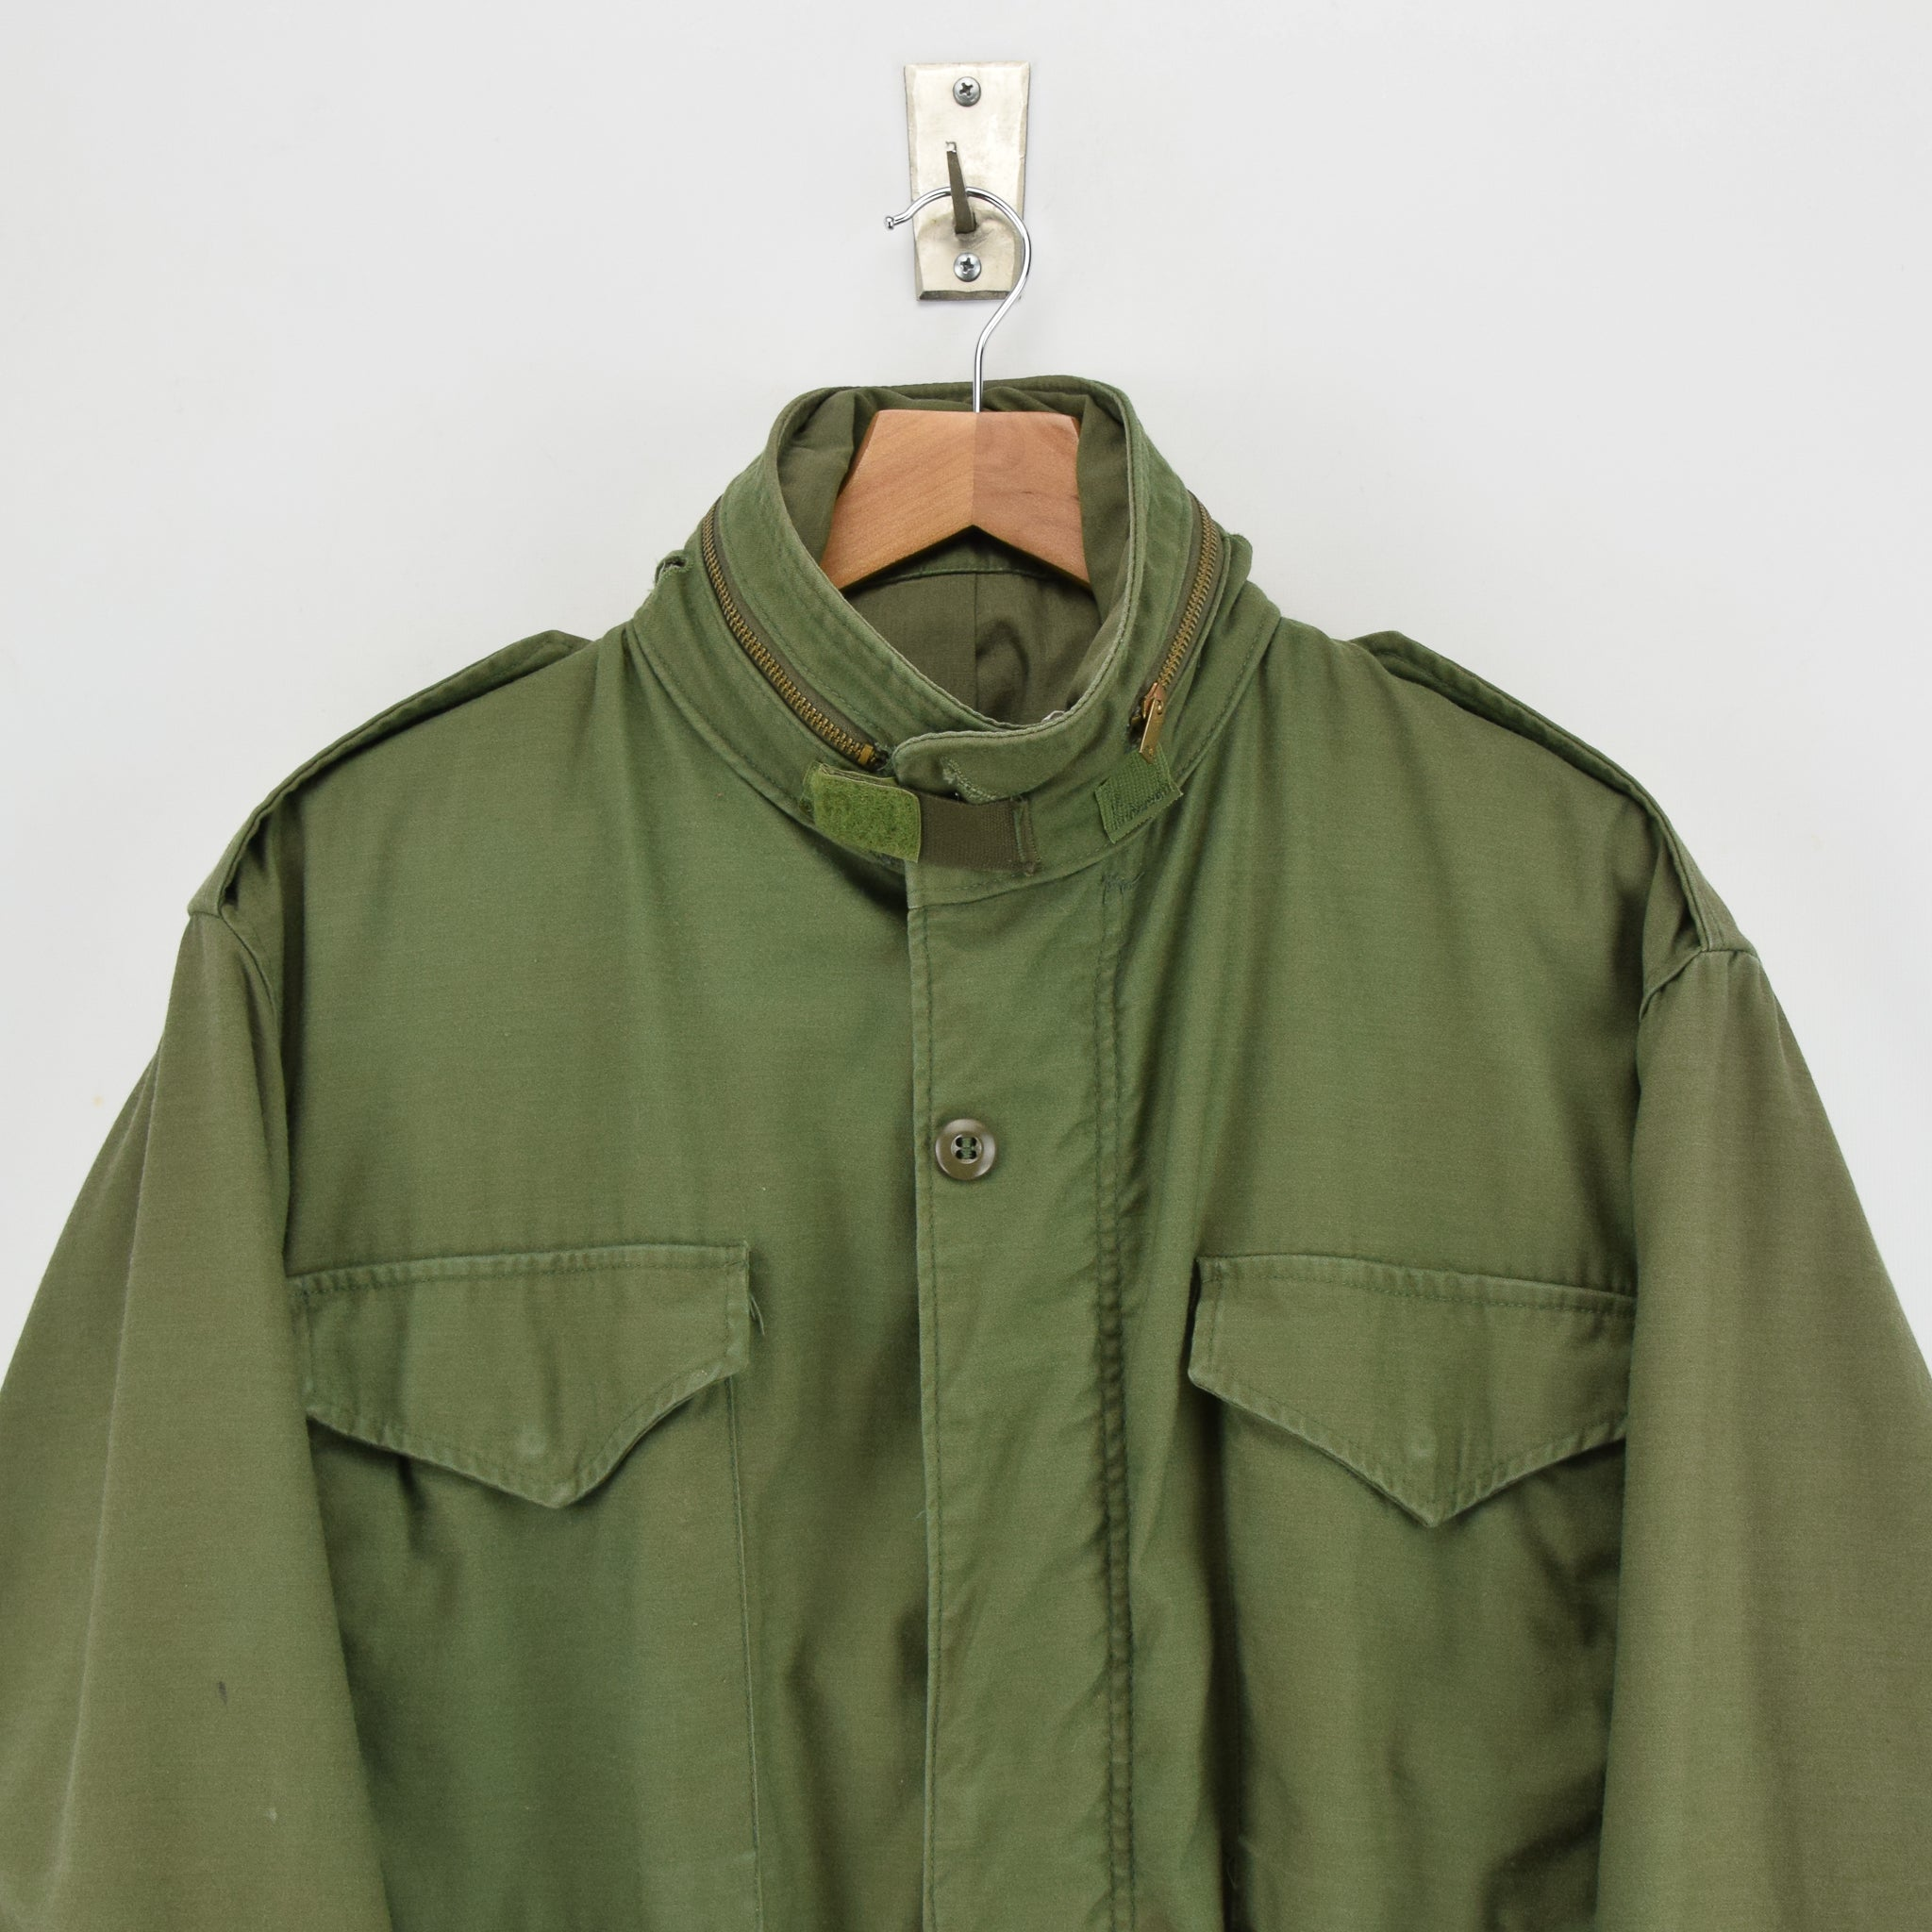 Vintage 80s M-65 Man's Cold Weather Field Military Army Jacket M Reg chest